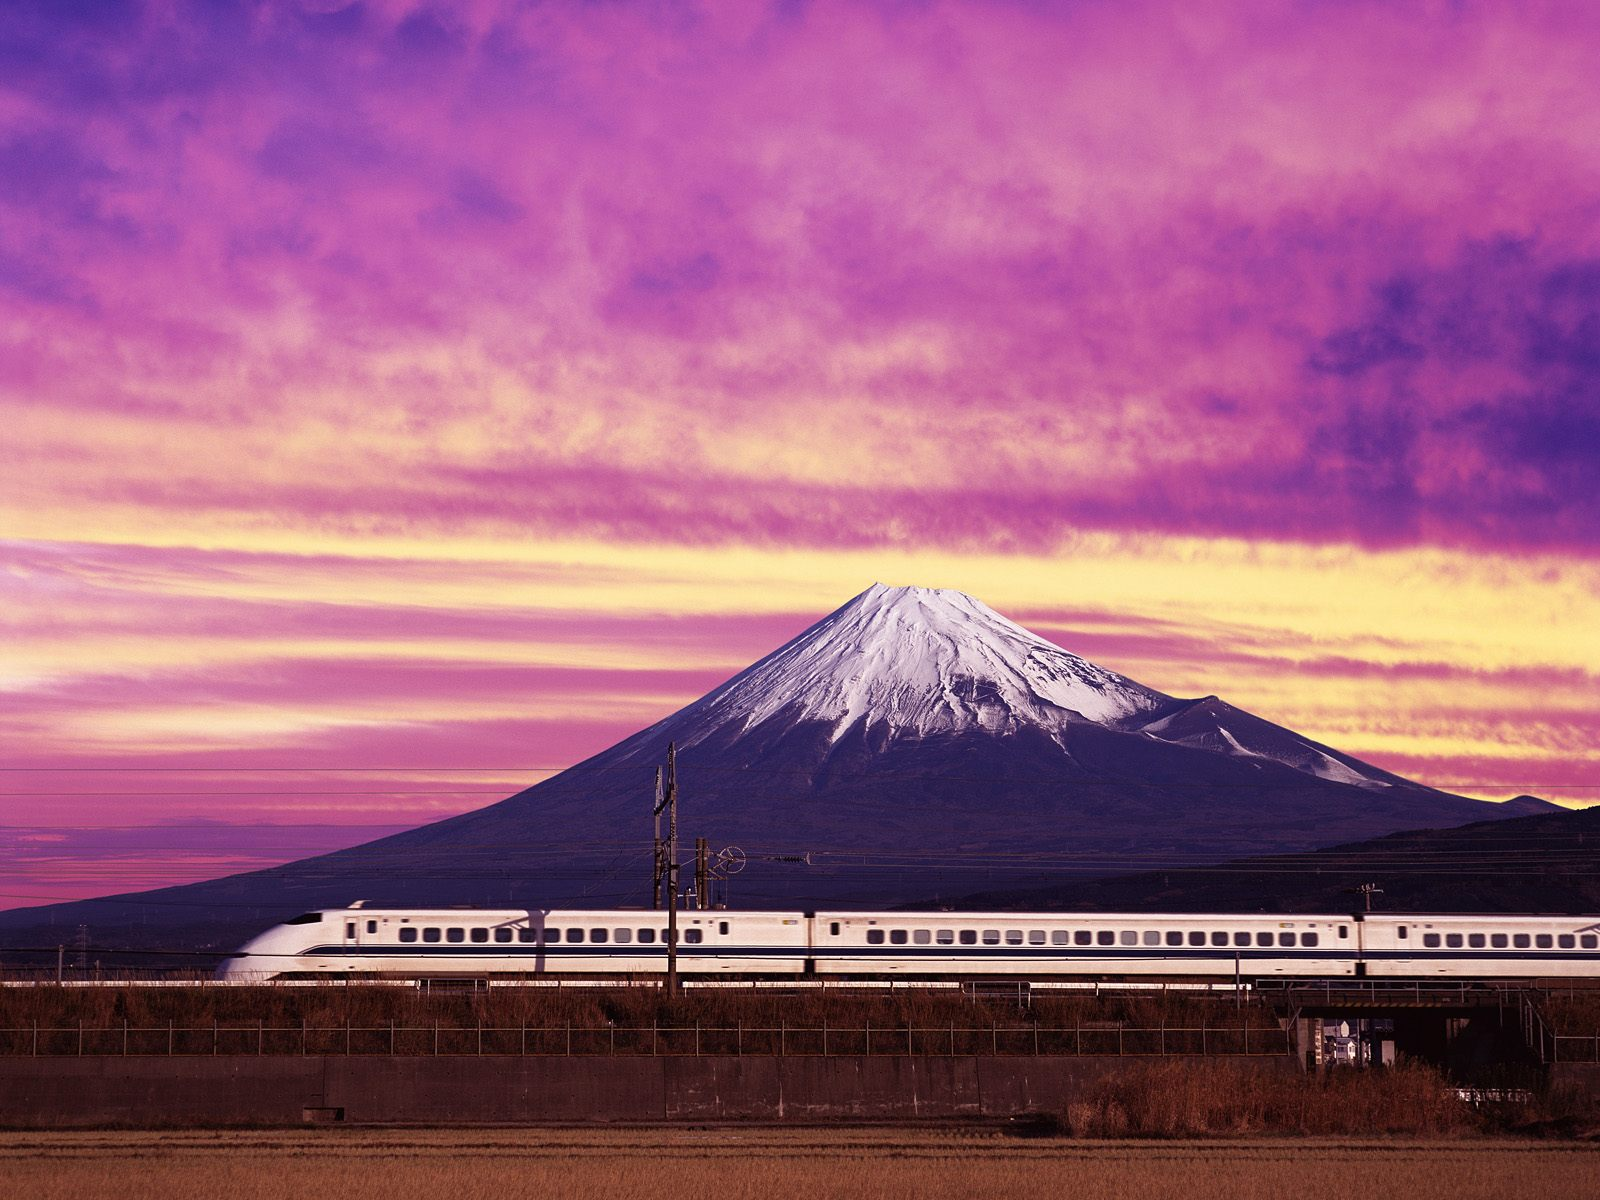 Shinkansen Bullet Train and Mount Fuji